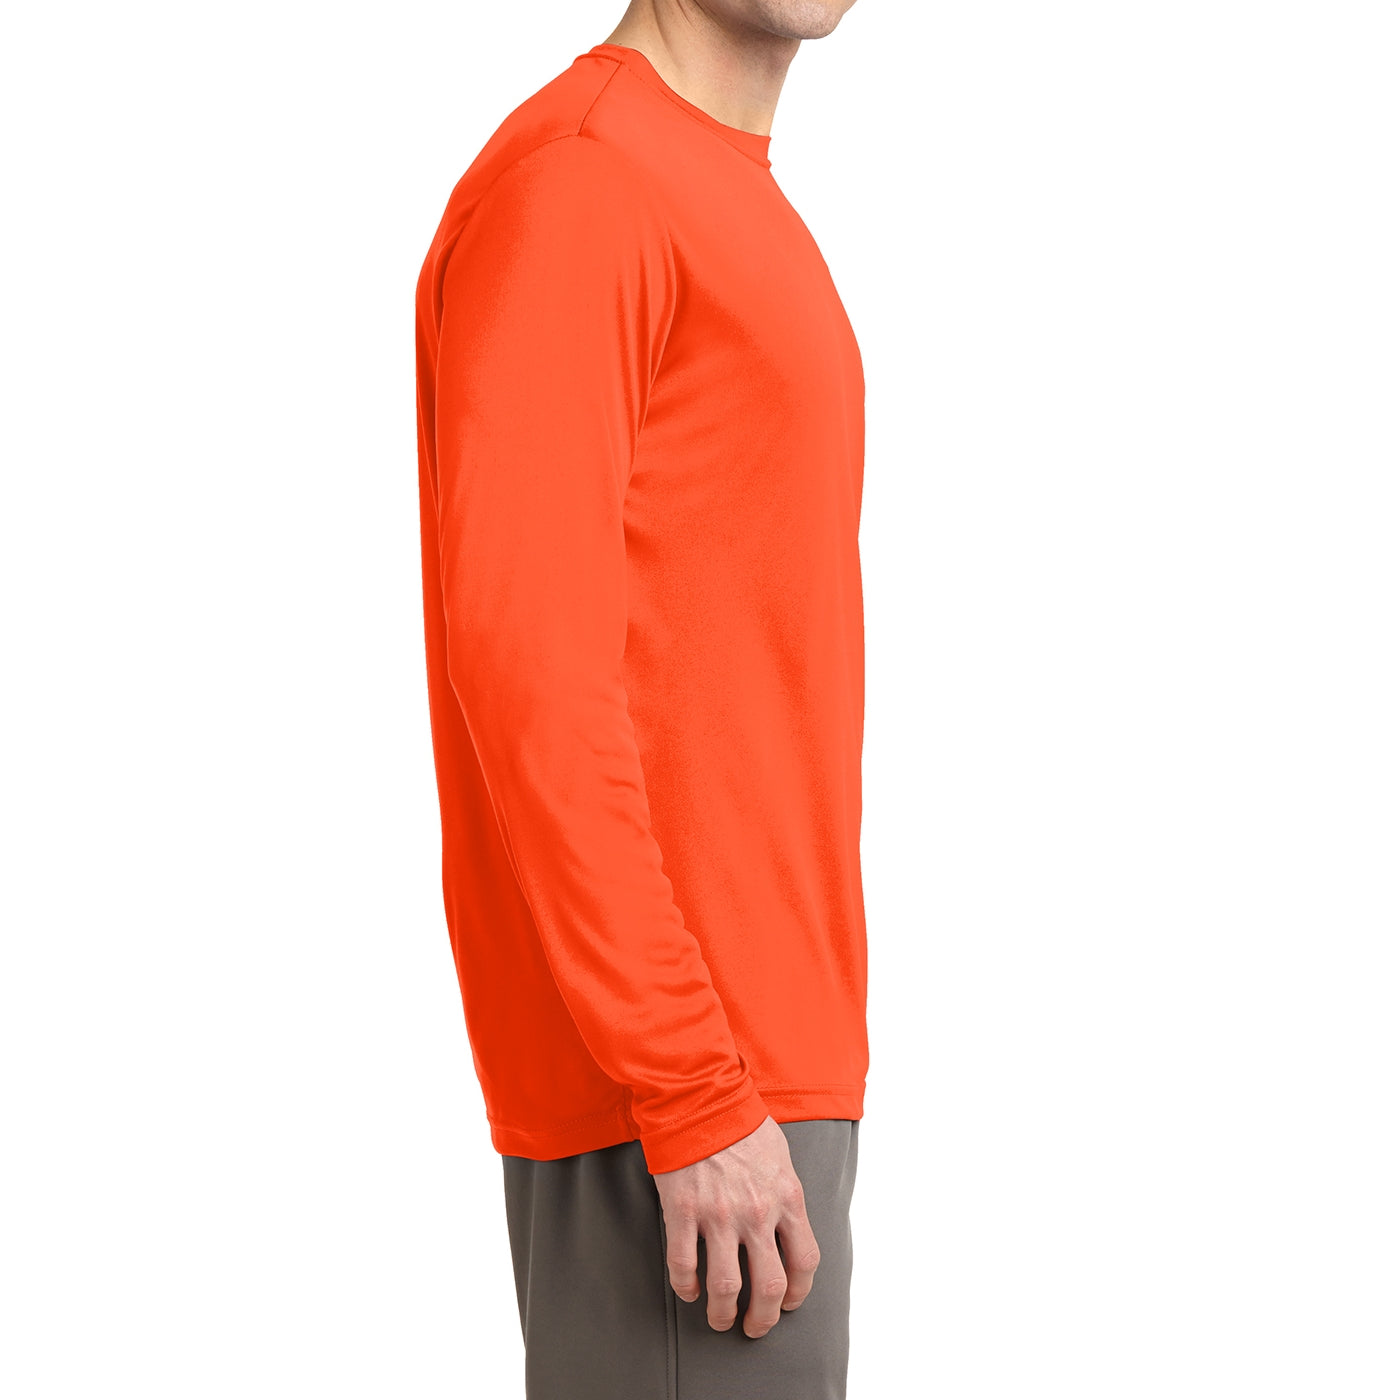 Men's Long Sleeve PosiCharge Competitor Tee - Neon Orange